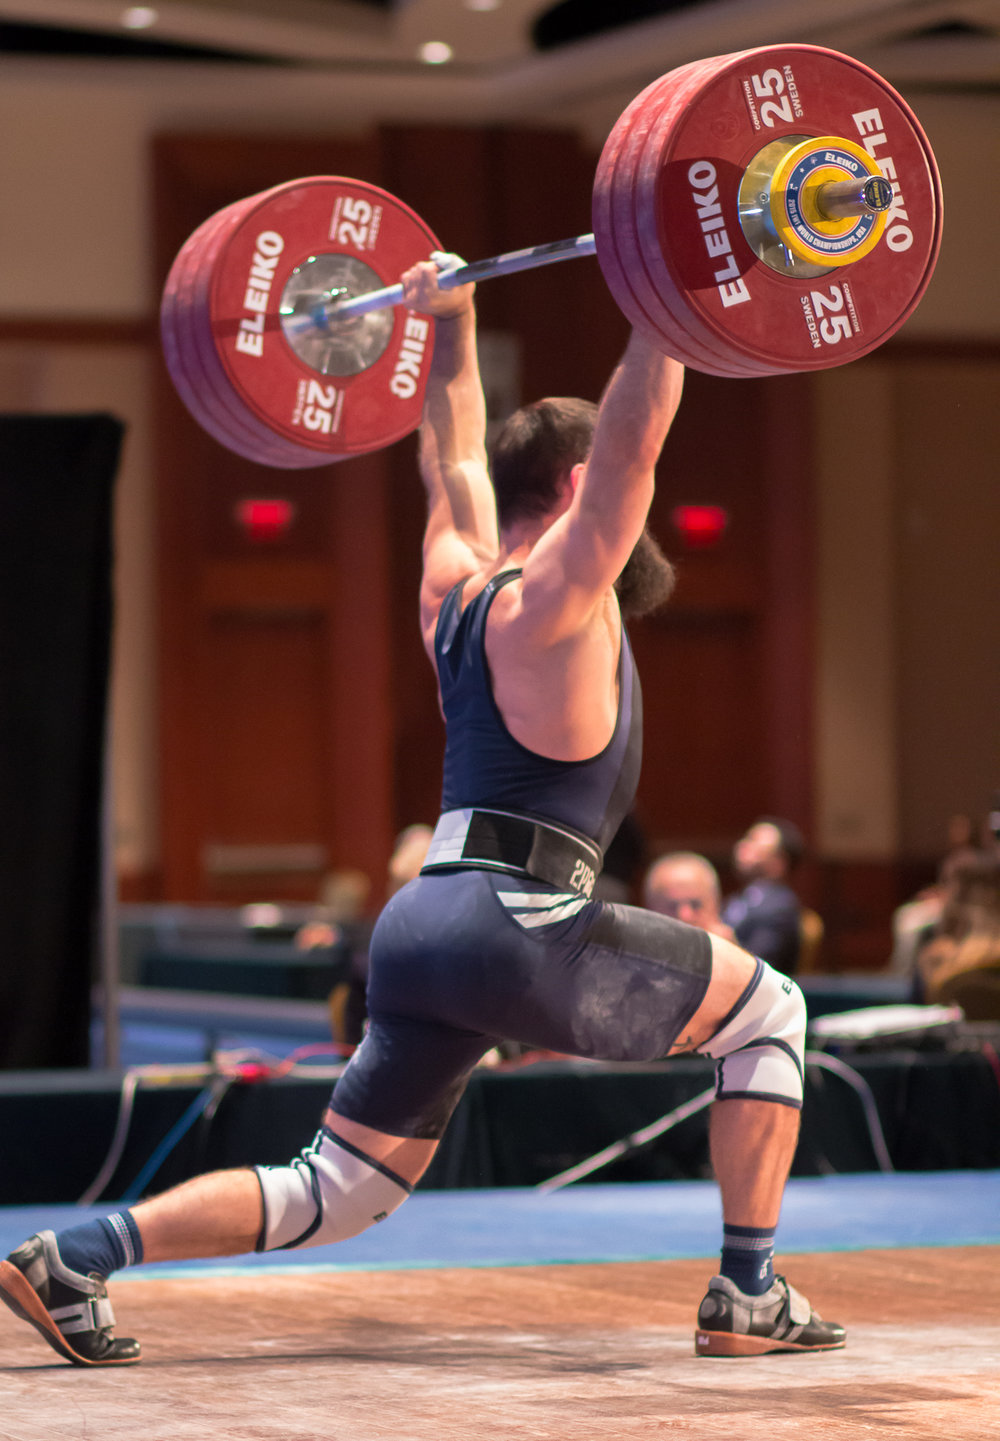 session-a-favorites-american-open-2016-weightlifting-photography (11 of 12).jpg